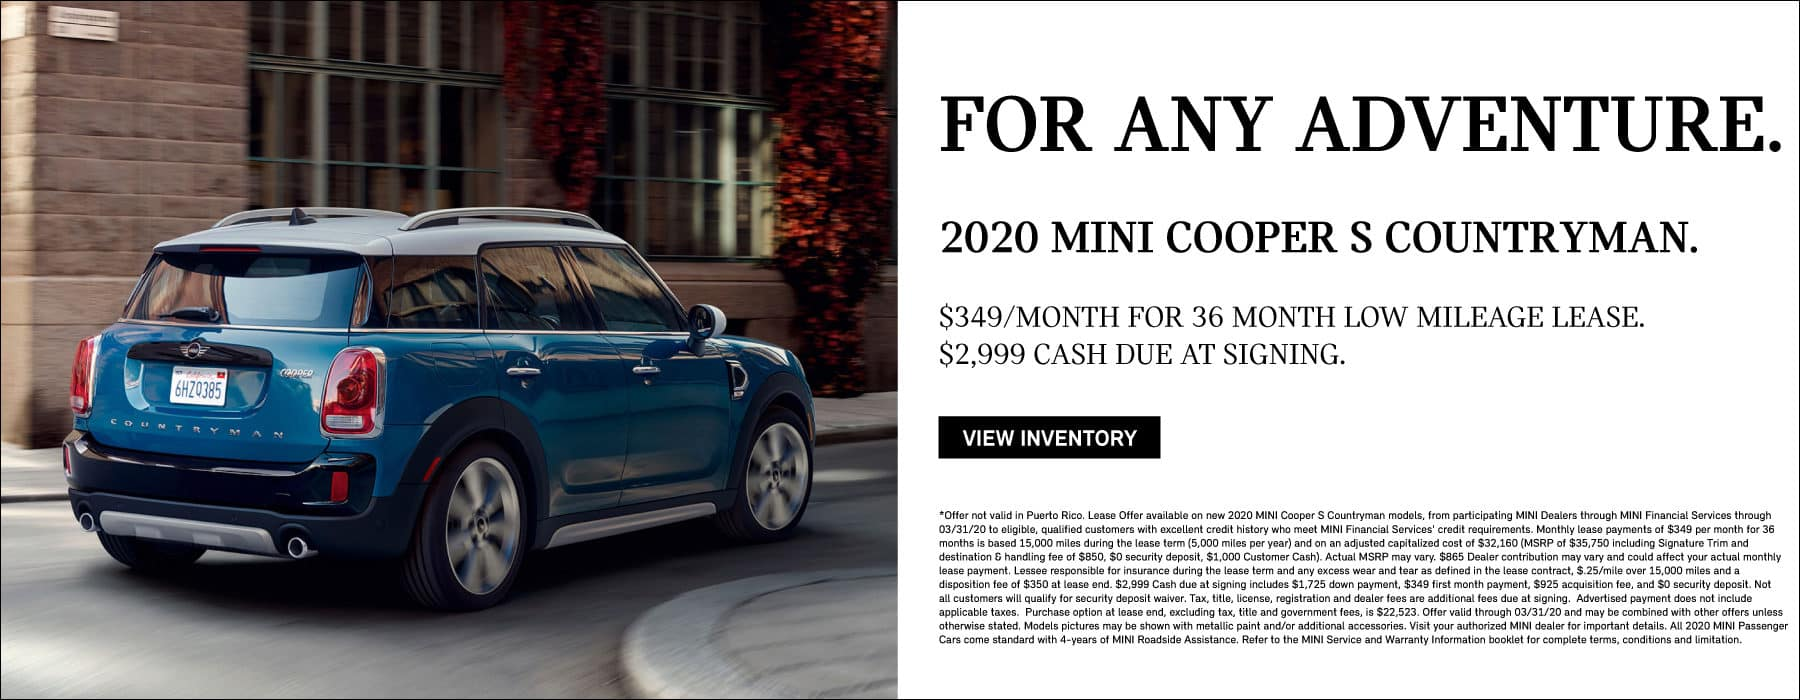 FOR ANY ADVENTURE. 2020 MINI COOPER S COUNTRYMAN. $349/Month for 36 month low mileage lease. $2,999 cash due at signing. Click to view inventory.